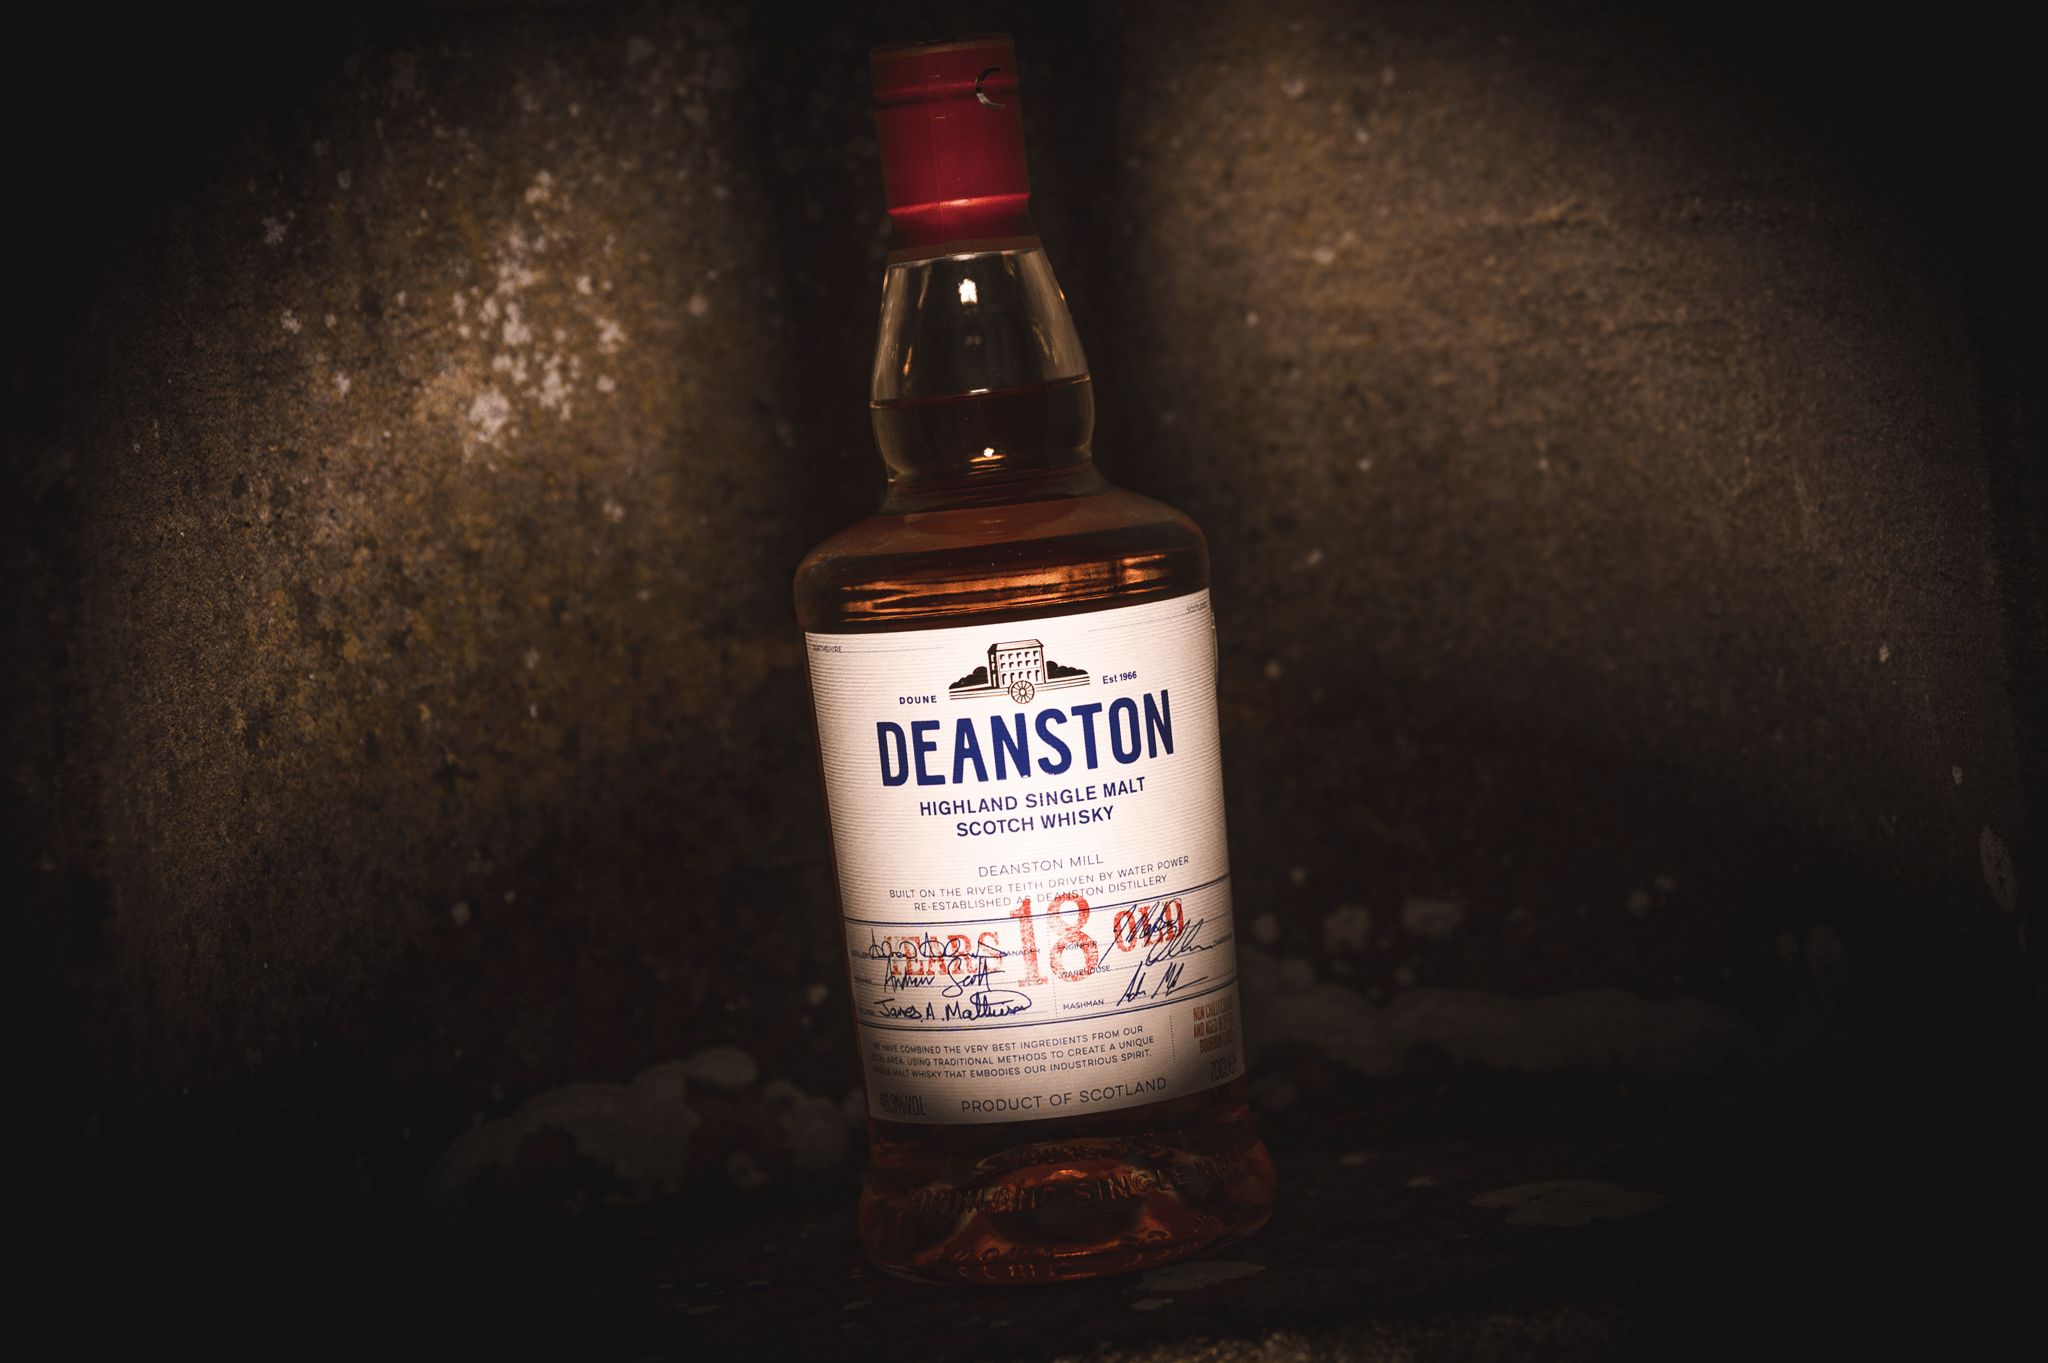 February 2021 – Deanston 18yr, Summerton Whisky Club